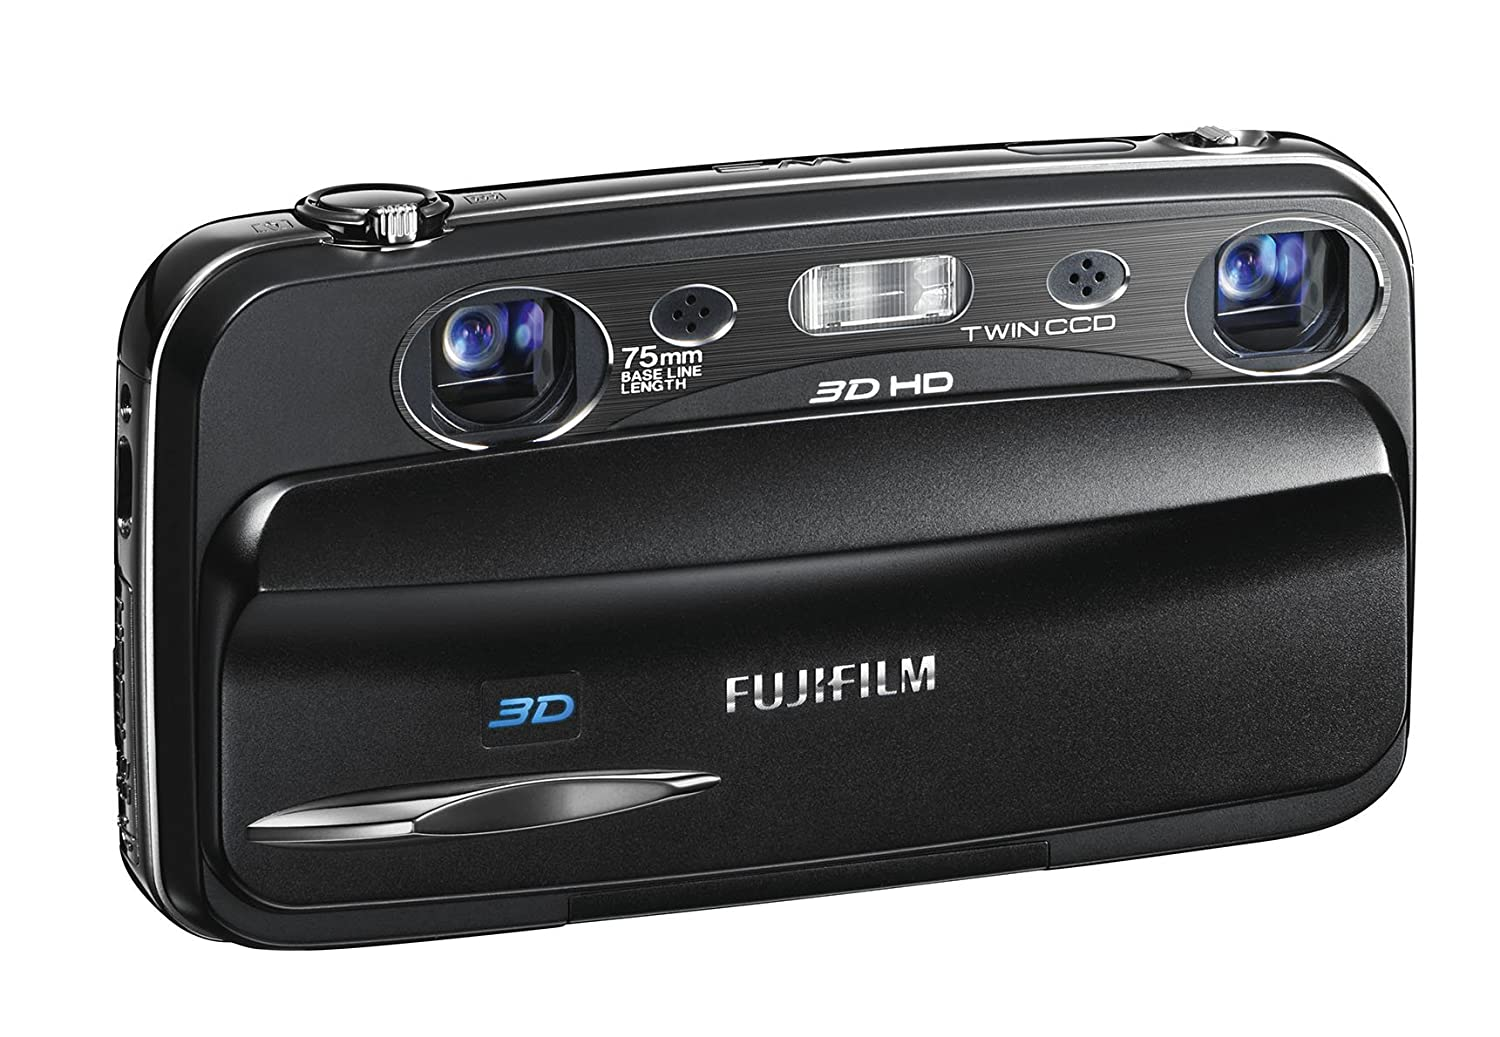 Amazon.com : Fujifilm FinePix Real 3D W3 Digital Camera with 3.5-Inch LCD :  Point And Shoot Digital Cameras : Camera & Photo